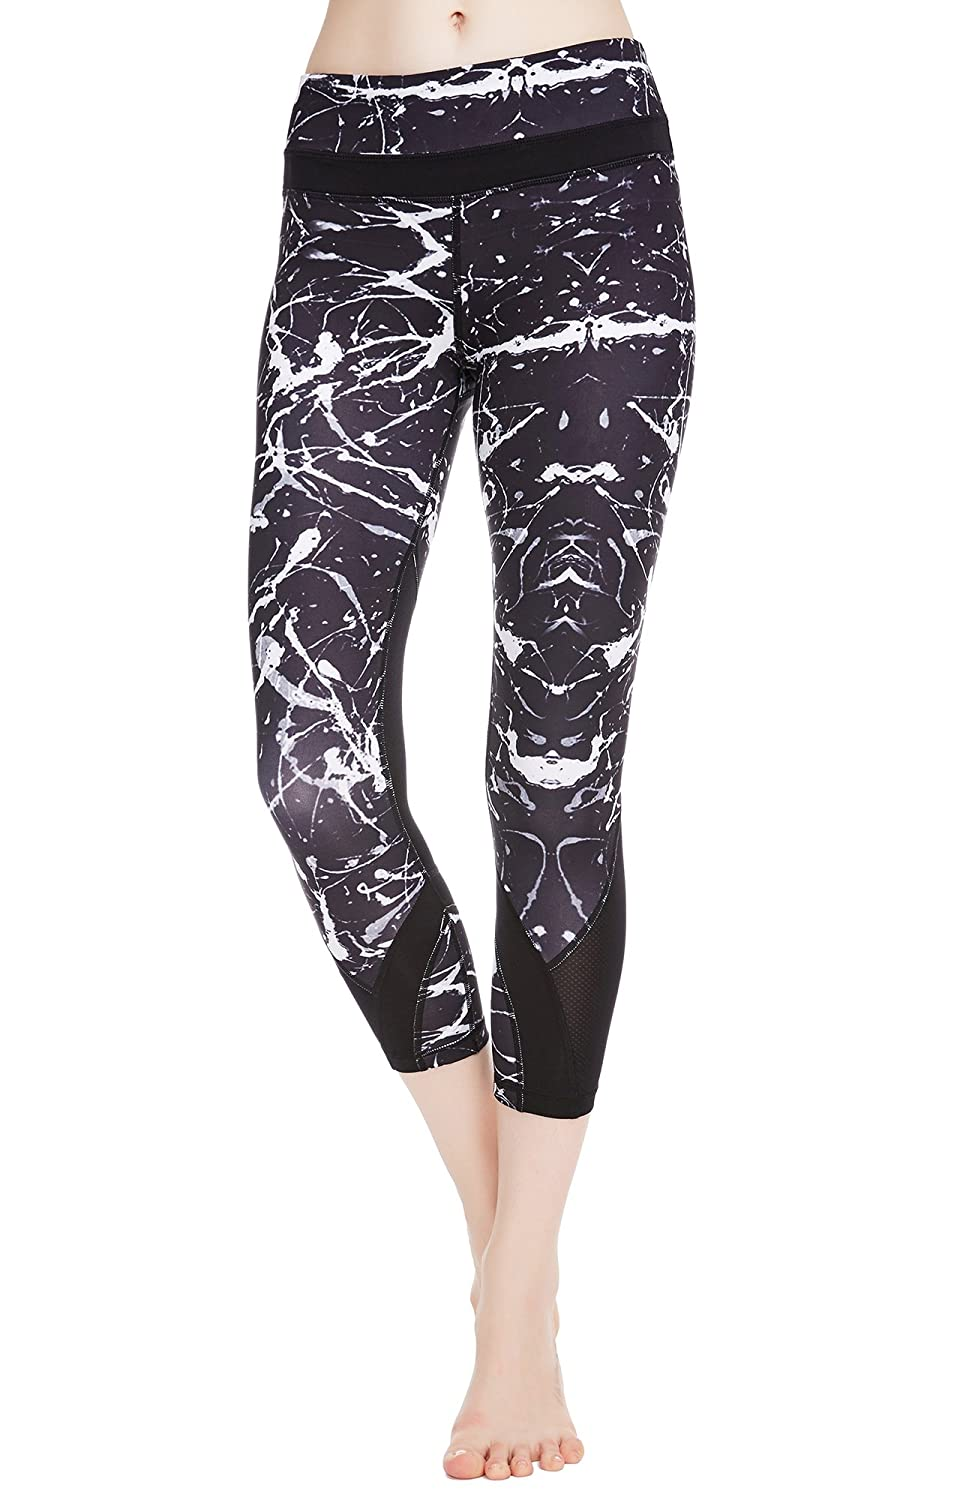 dd48eda1dd882 Amazon.com: icyzone Women's Workout Pants Activewear Running Leggings Yoga  Capris Sports Tights: Clothing